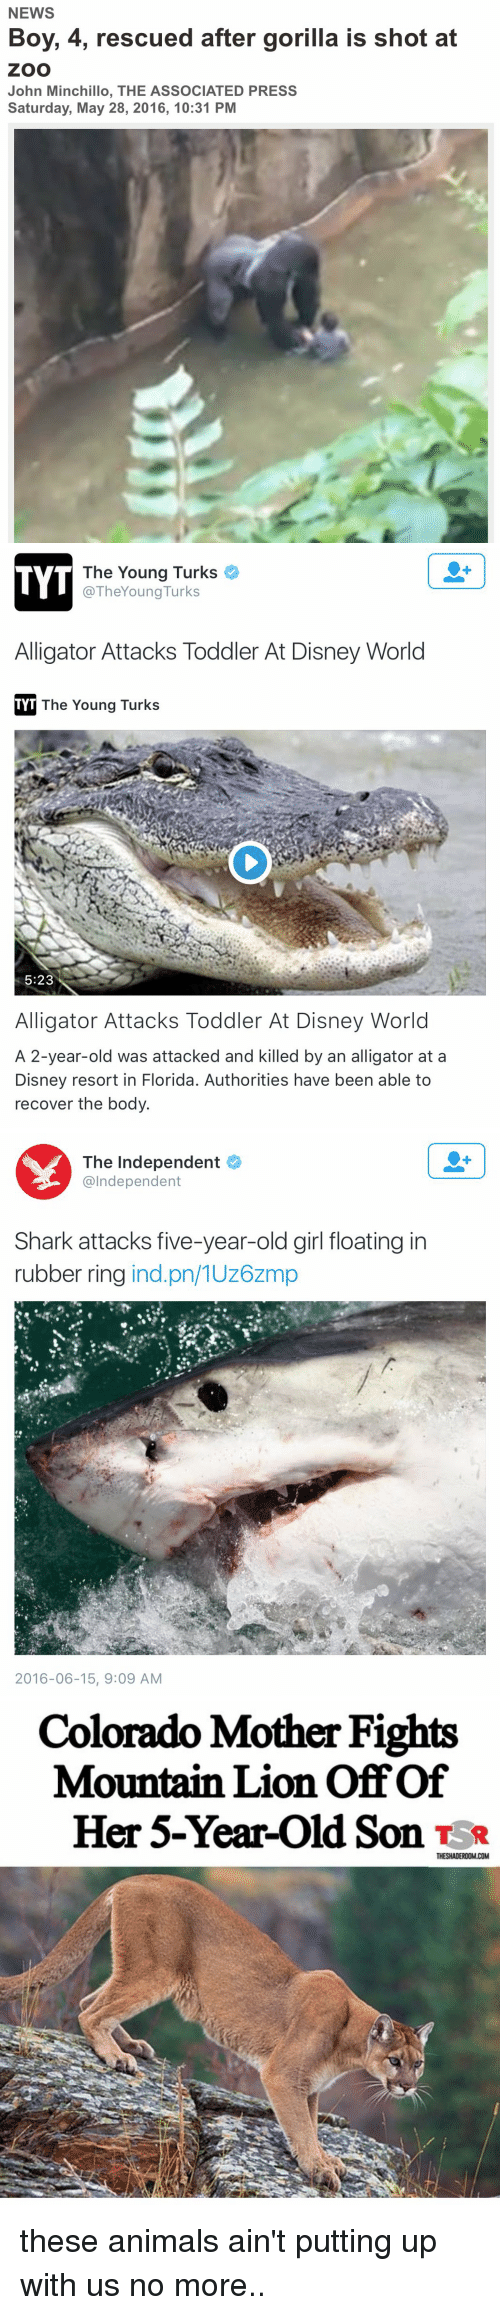 Motheres: NEWS  Boy, 4, rescued after gorilla is shot at  ZOO  John Minchillo, THE ASSOCIATED PRESS  Saturday, May 28, 2016, 10:31 PM   The Young Turks  TYT  @TheYoung Turks  Alligator Attacks Toddler At Disney World  TYT The Young Turks  5:23  Alligator Attacks Toddler At Disney World  A 2-year-old was attacked and killed by an alligator at a  Disney resort in Florida. Authorities have been able to  recover the body.   The Independent  @Independent  Shark attacks five-year-old girl floating in  rubber ring  ind pn/1UZ6Zm  2016-06-15, 9:09 AM   Colorado Mother Fights  Mountain Lion of of  Her 5-Year-old Son TSR  THESHADEROOMCOM these animals ain't putting up with us no more..